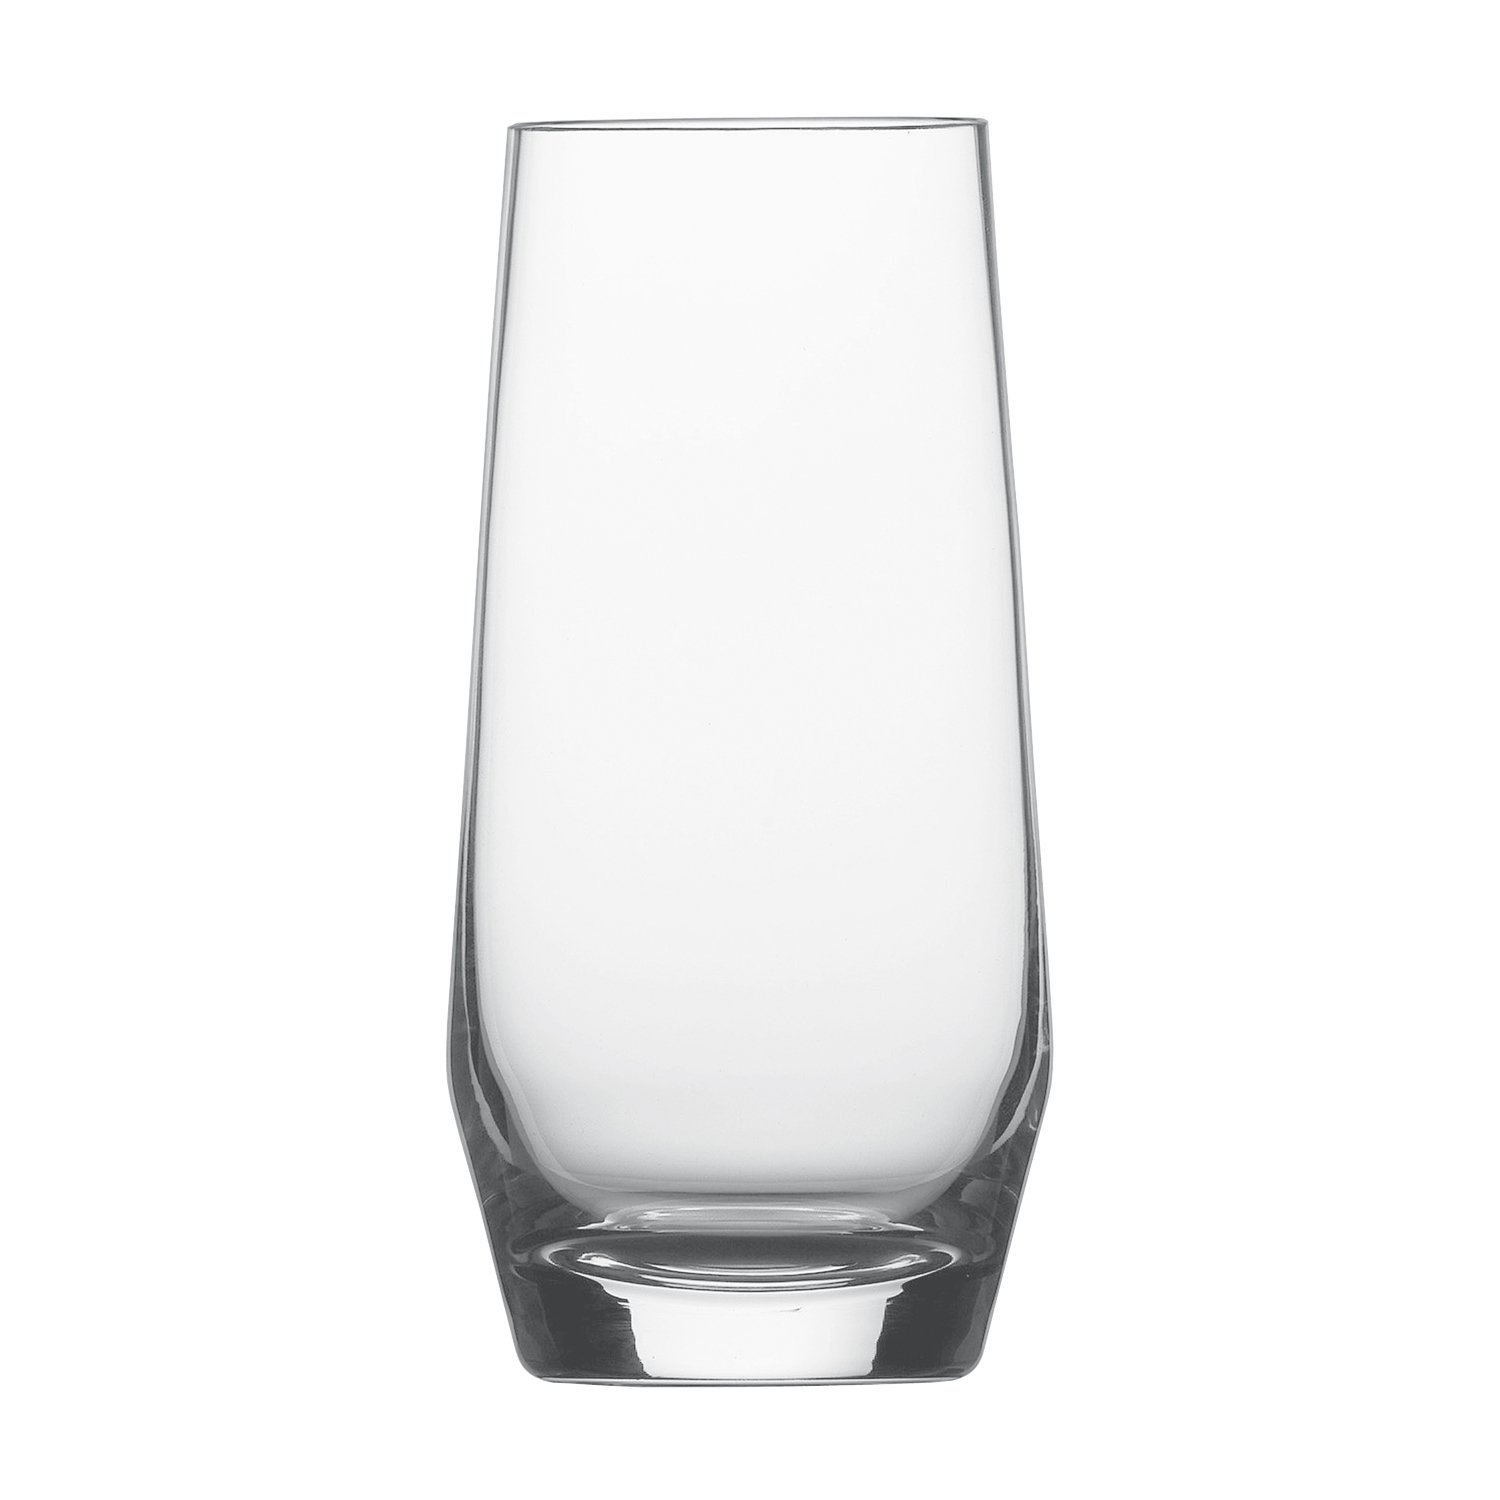 Schott Zwiesel Tritan Crystal Glass Pure Barware Collection Long Drink Cocktail Glass, 18.3-Ounce, Set of 6 by Schott Zwiesel